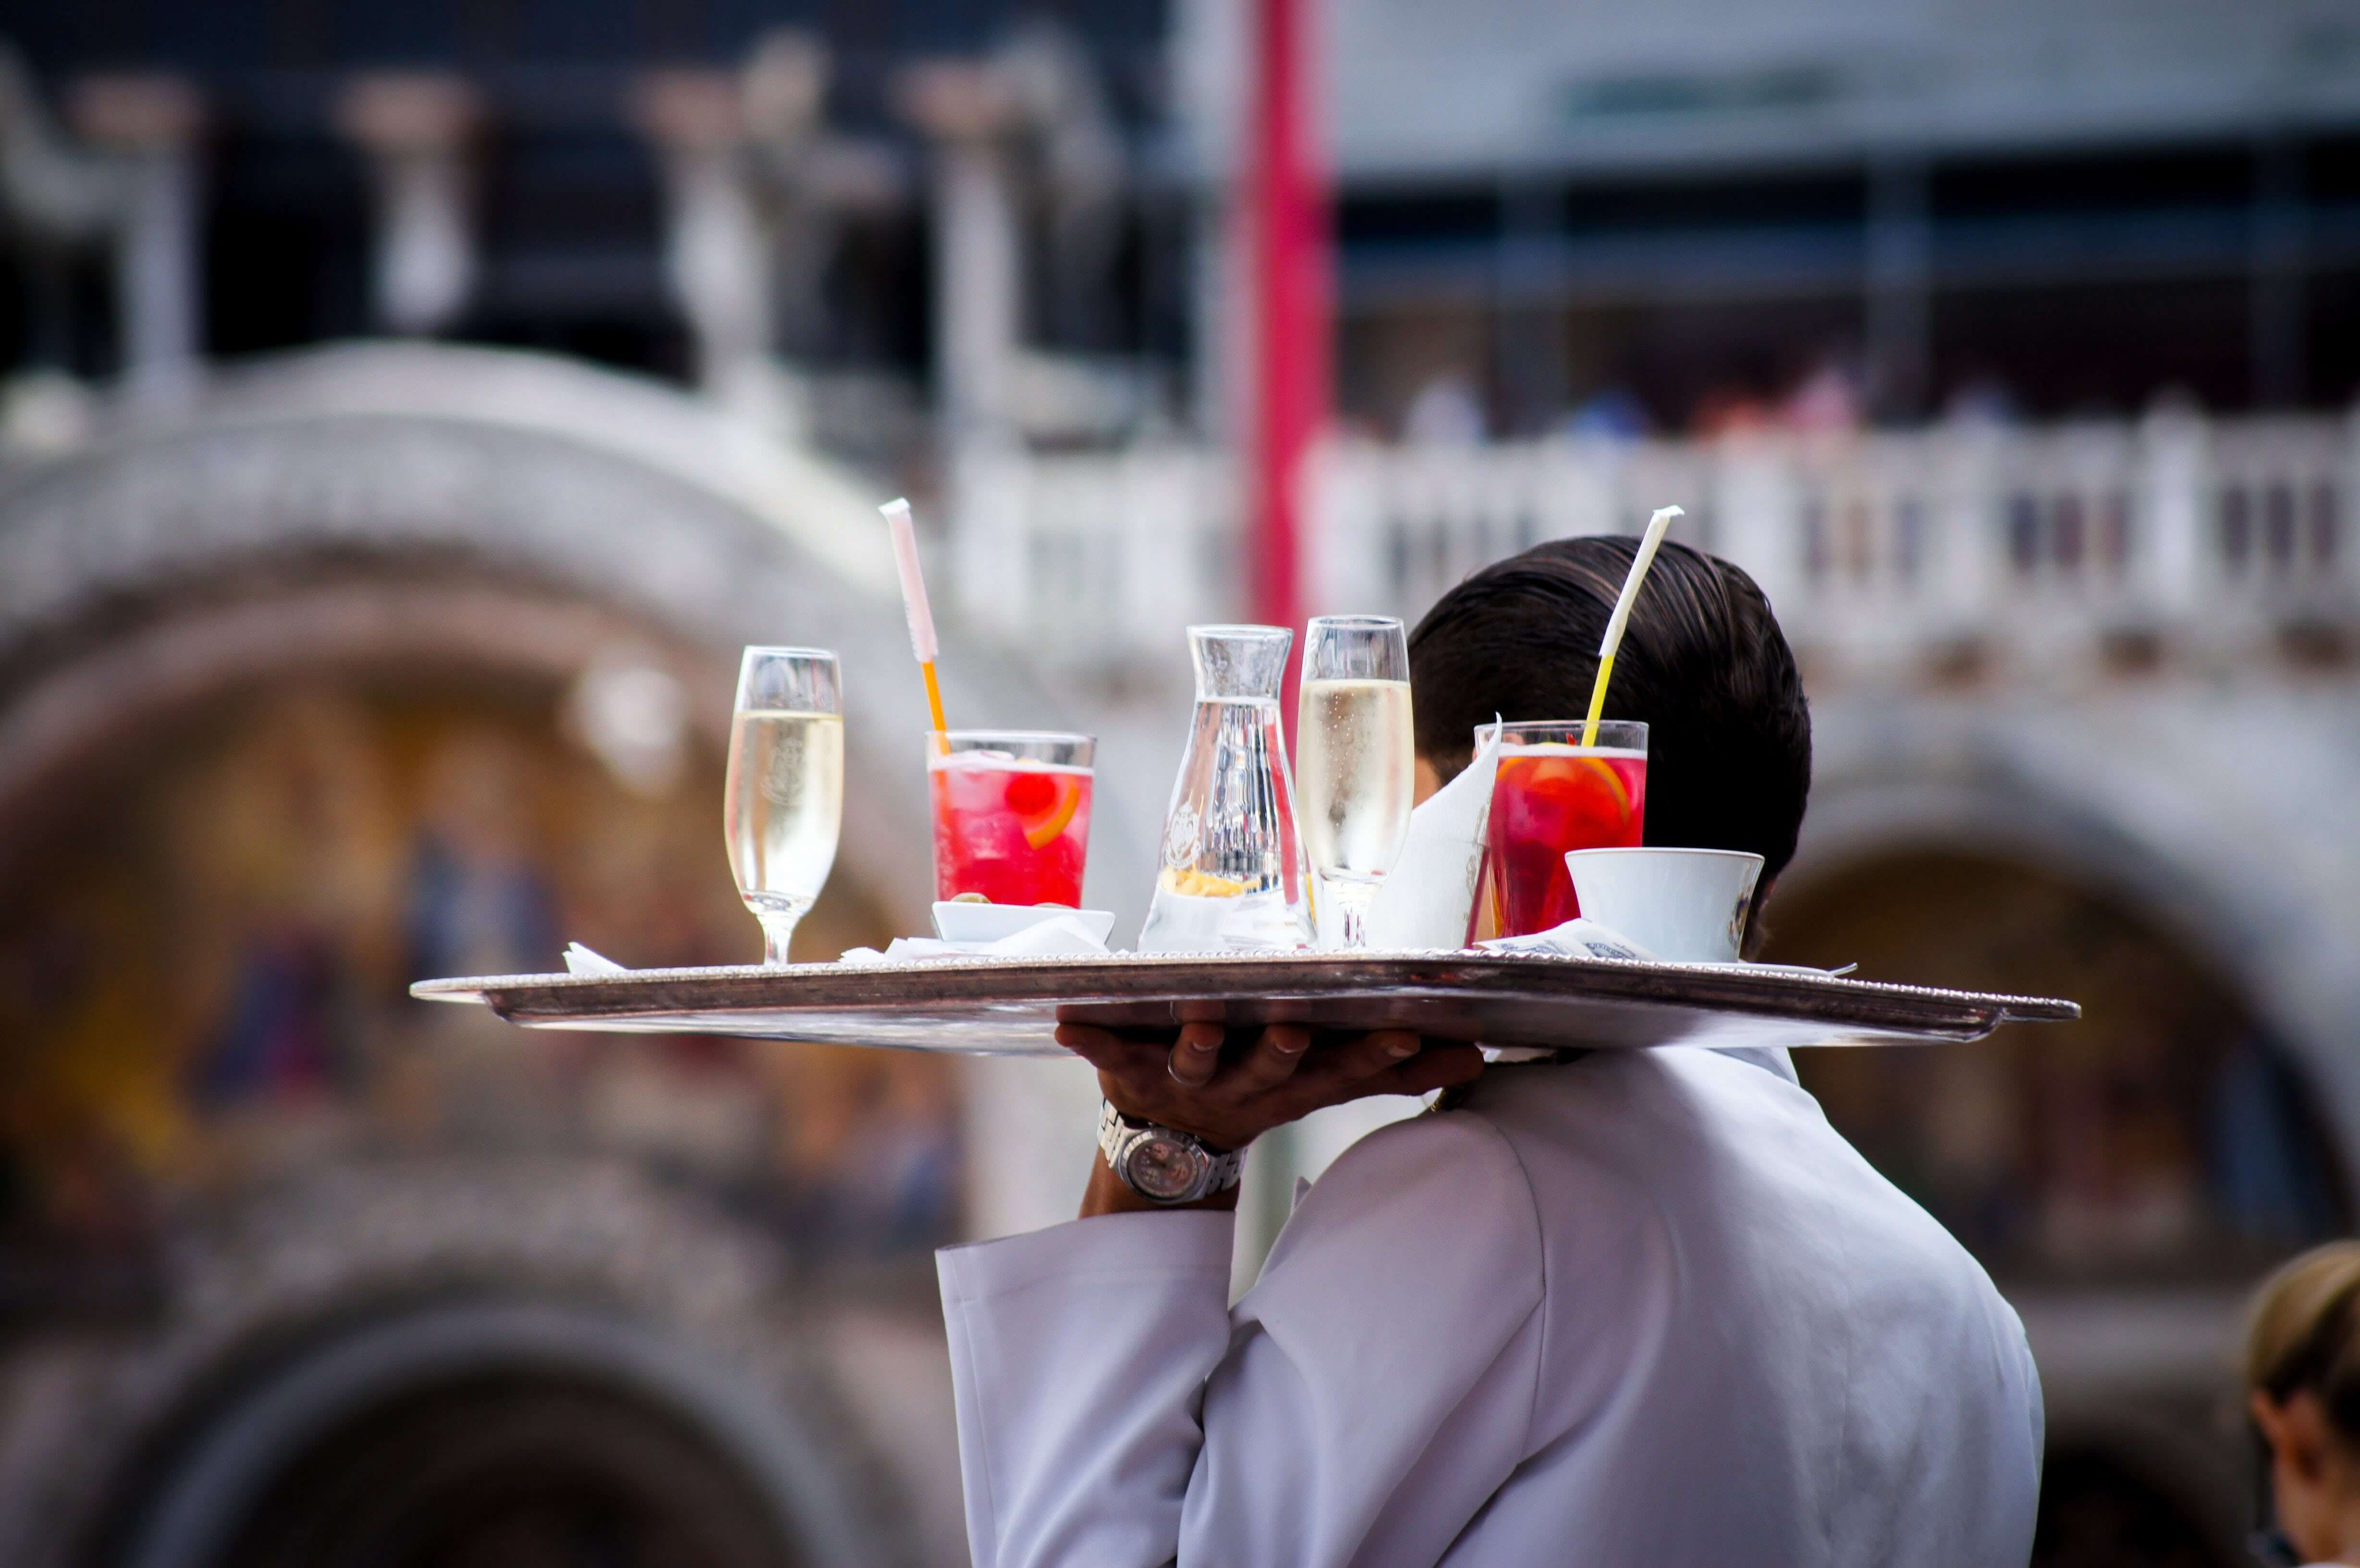 Waiter carrying a tray of drinks. Photo by Kate Townsend on Unsplash